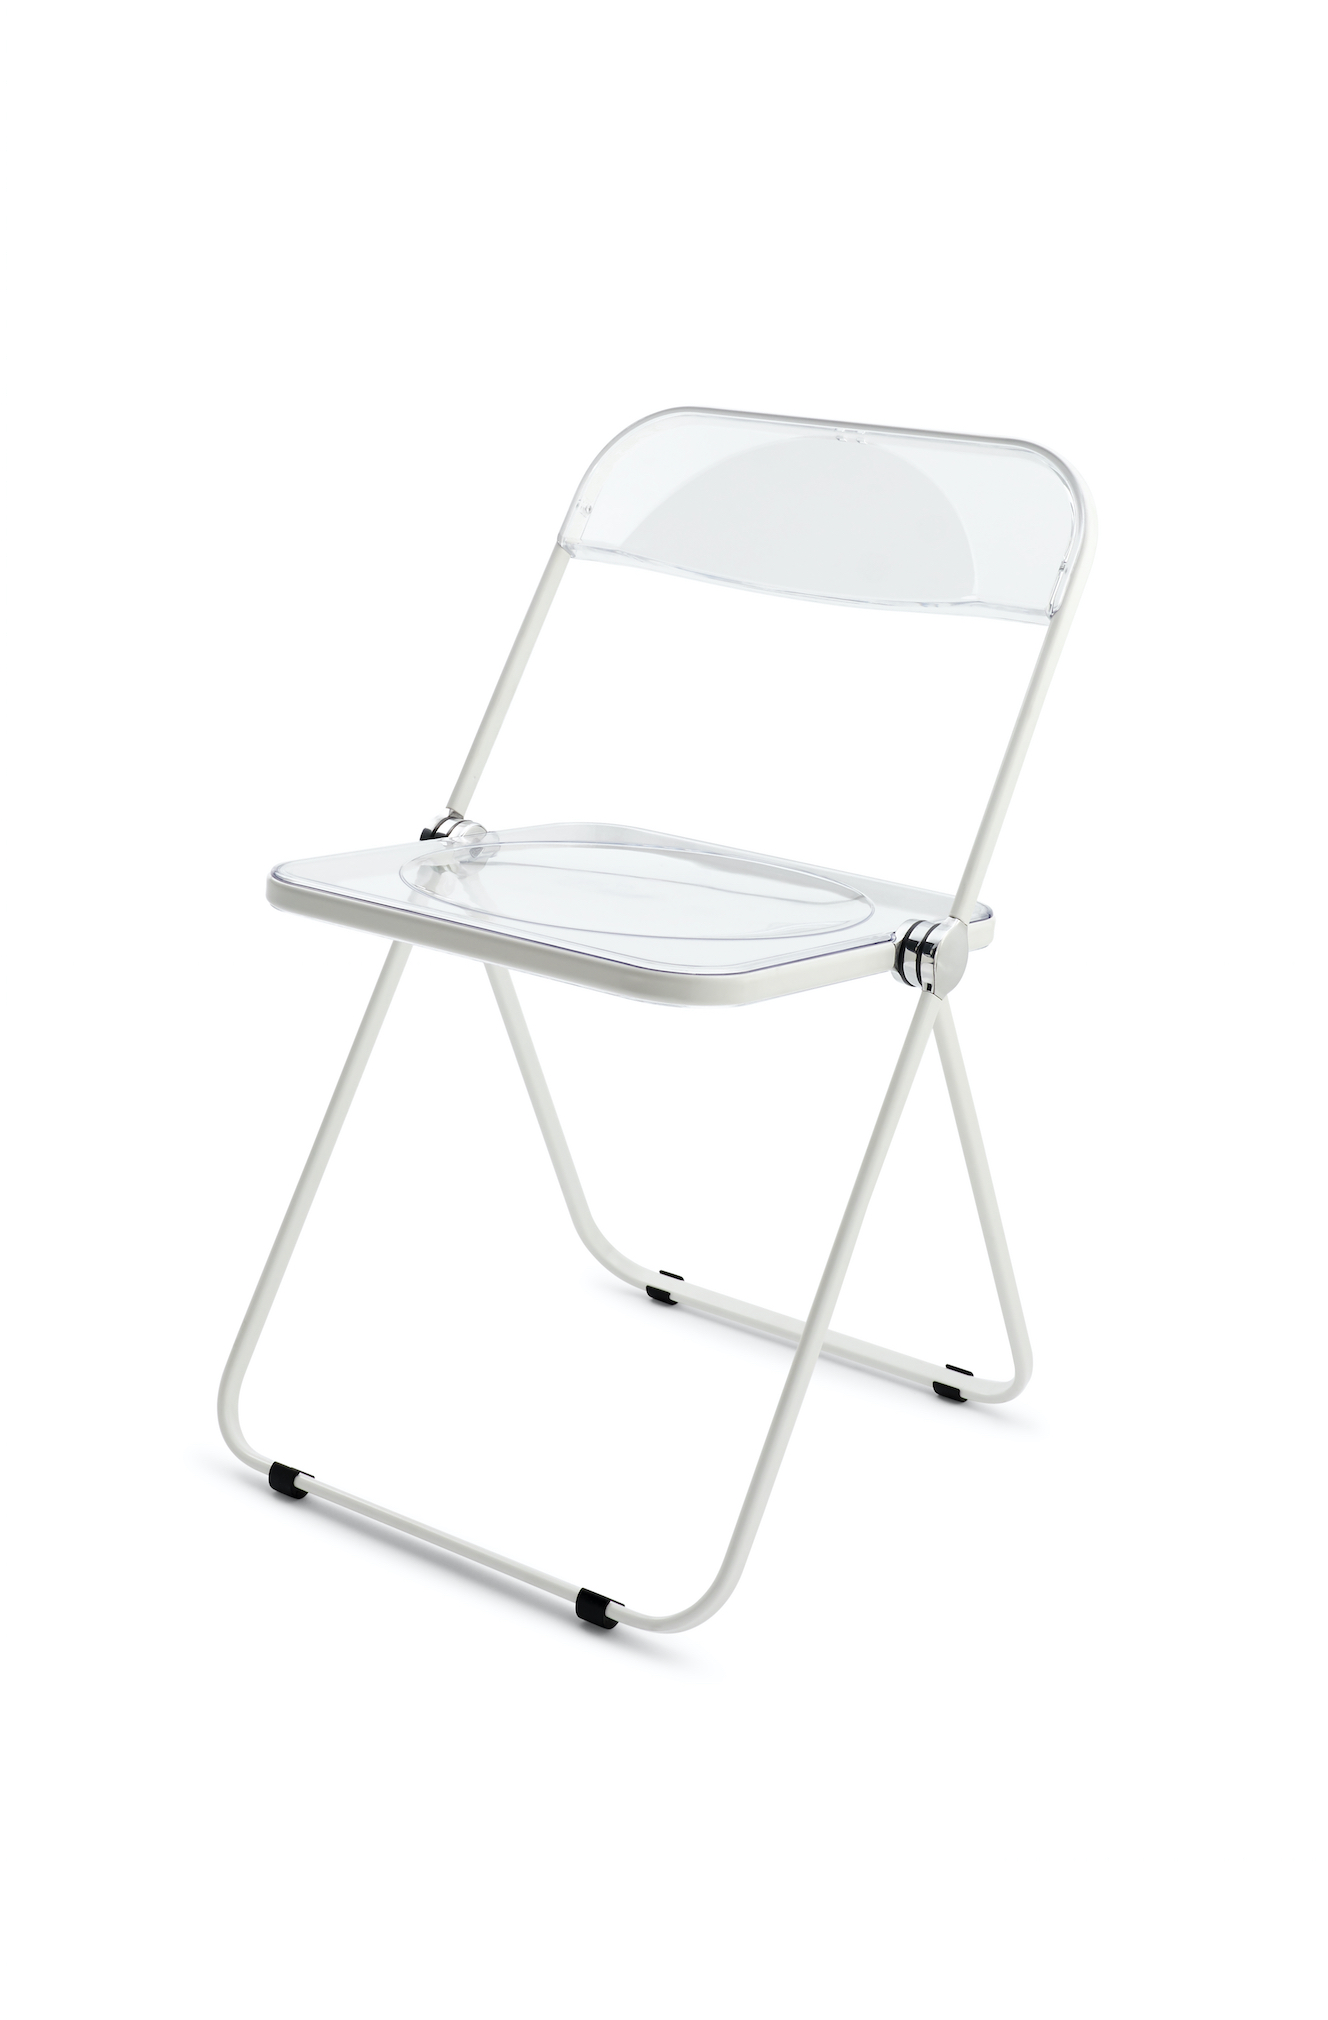 Castelli Folding chair PLIA, white